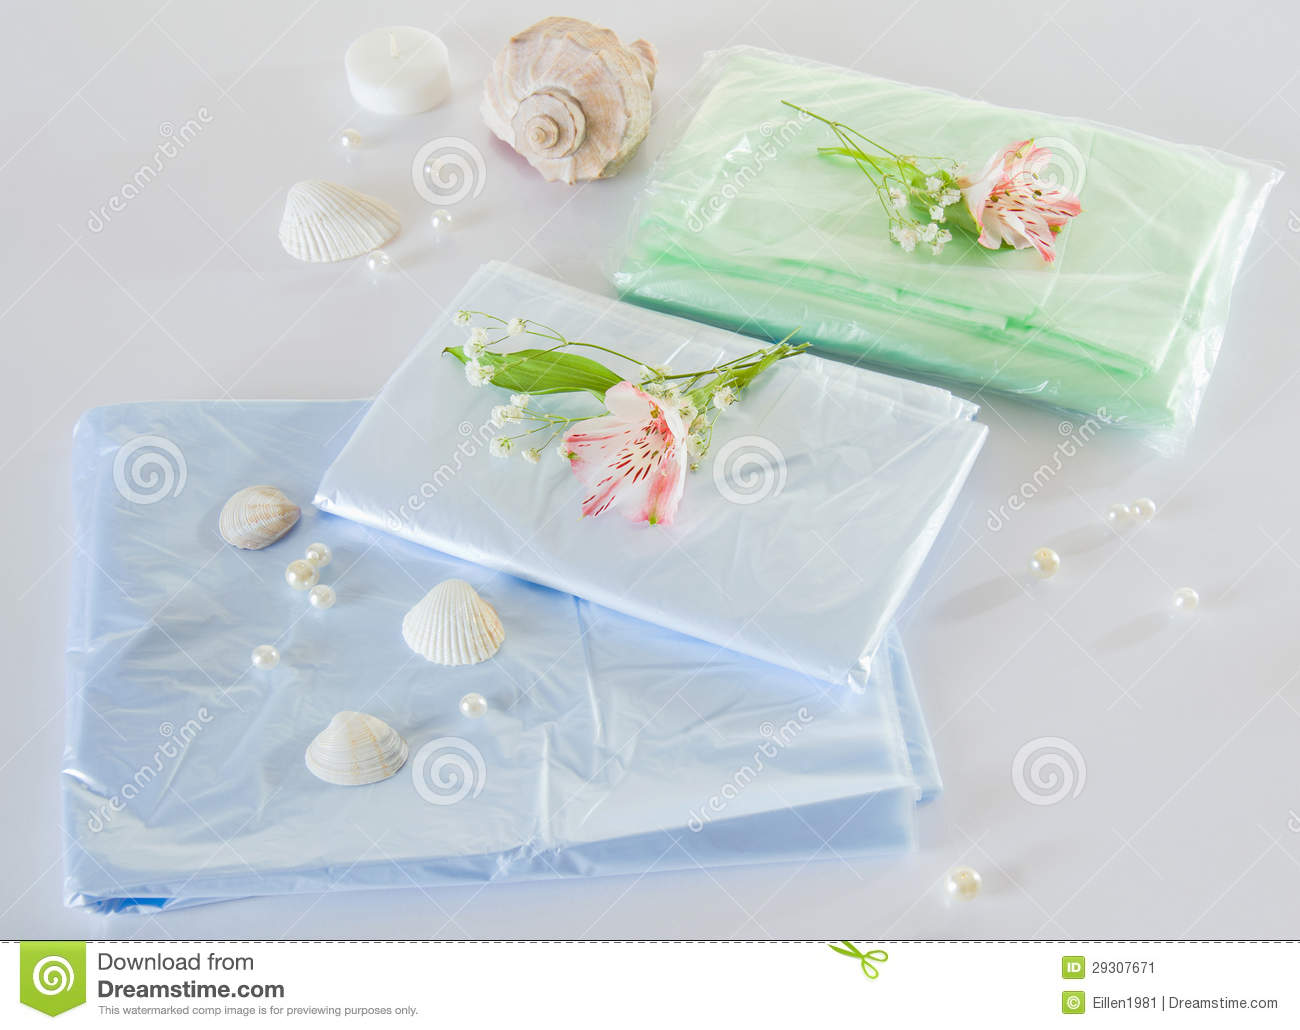 Polyethylene Sheet For Spa Or Clinic Royalty Free Stock